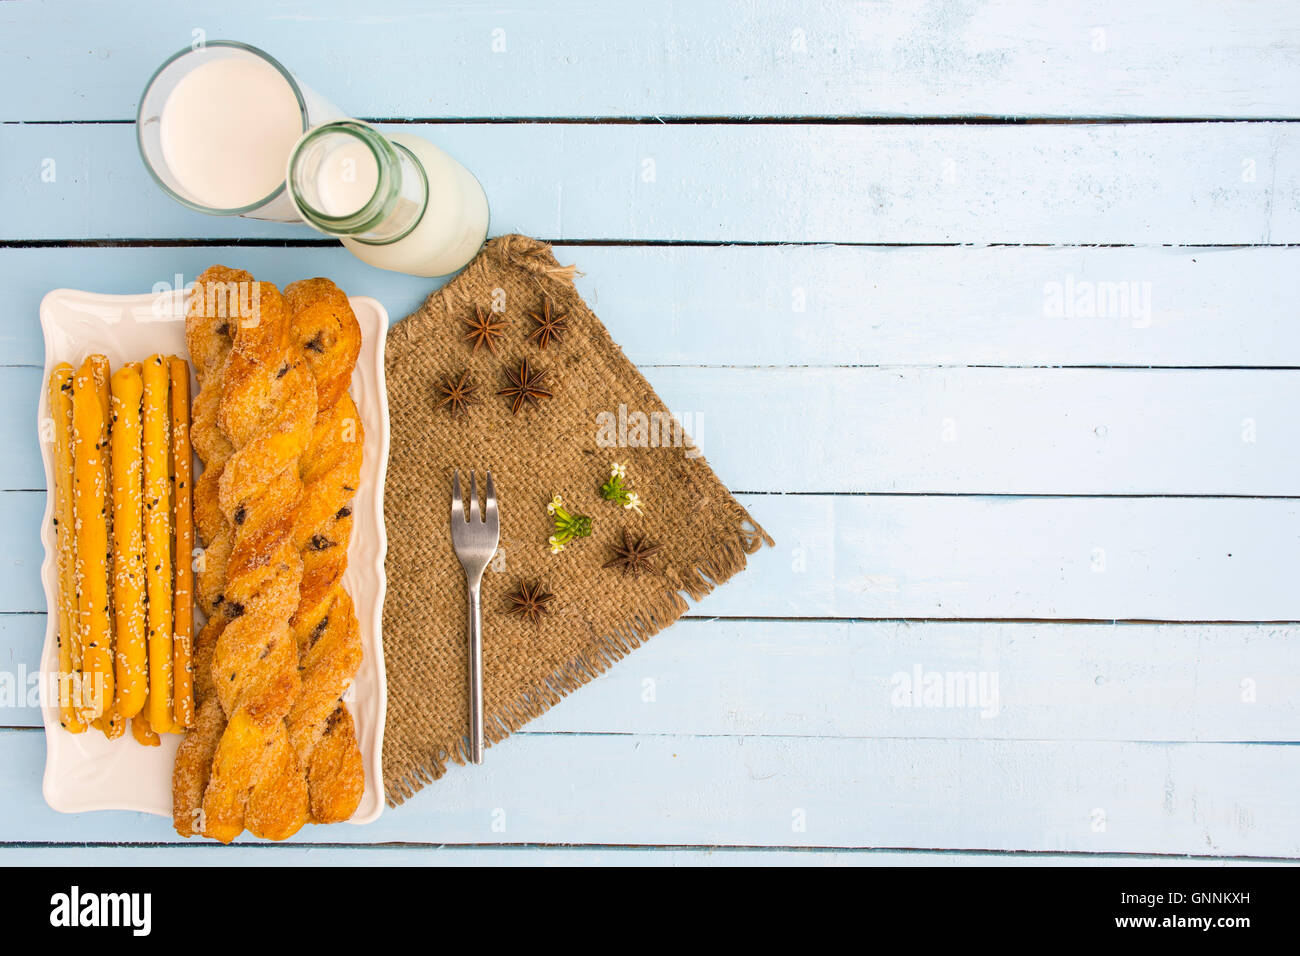 Breadsticks and milk on sky blue table background.Snack with meal or food of relax and holiday.Top view.1 - Stock Image